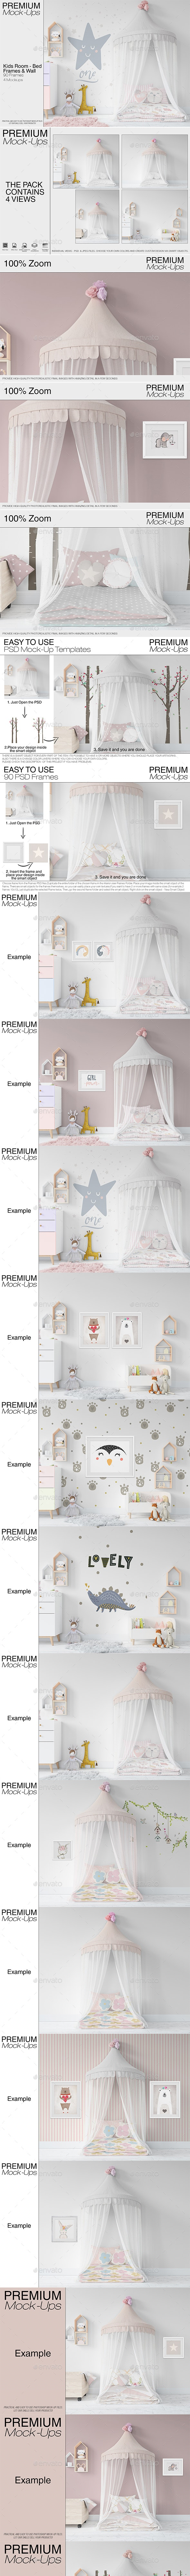 Kids Bed with Drapery Wall & Frames - Print Product Mock-Ups